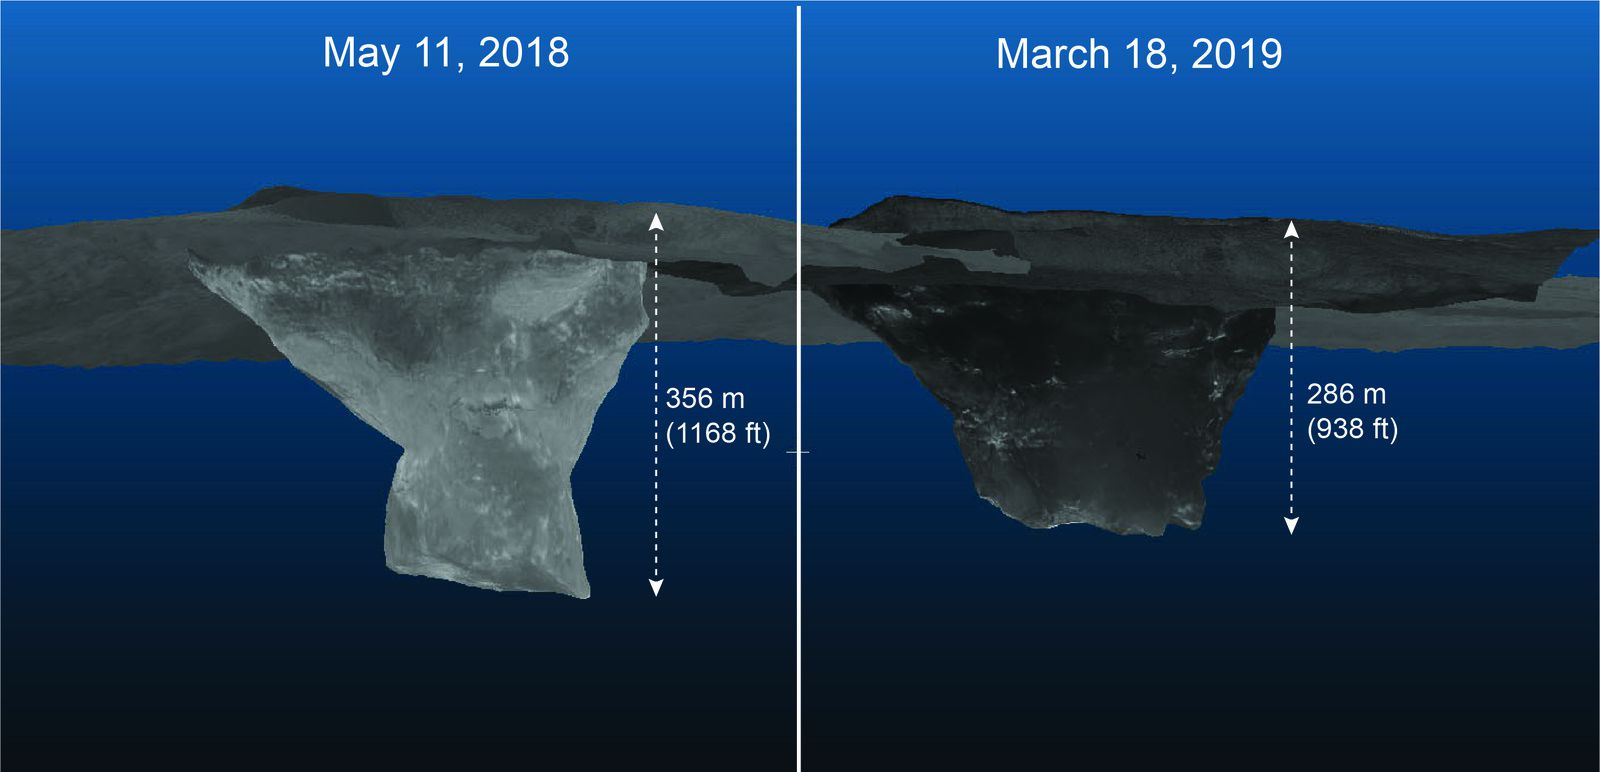 Kilauea - Pu'u'Ōō - morphological changes of the crater between 05.11.2018 and 18.03.2019 - Doc. HVO / USGS